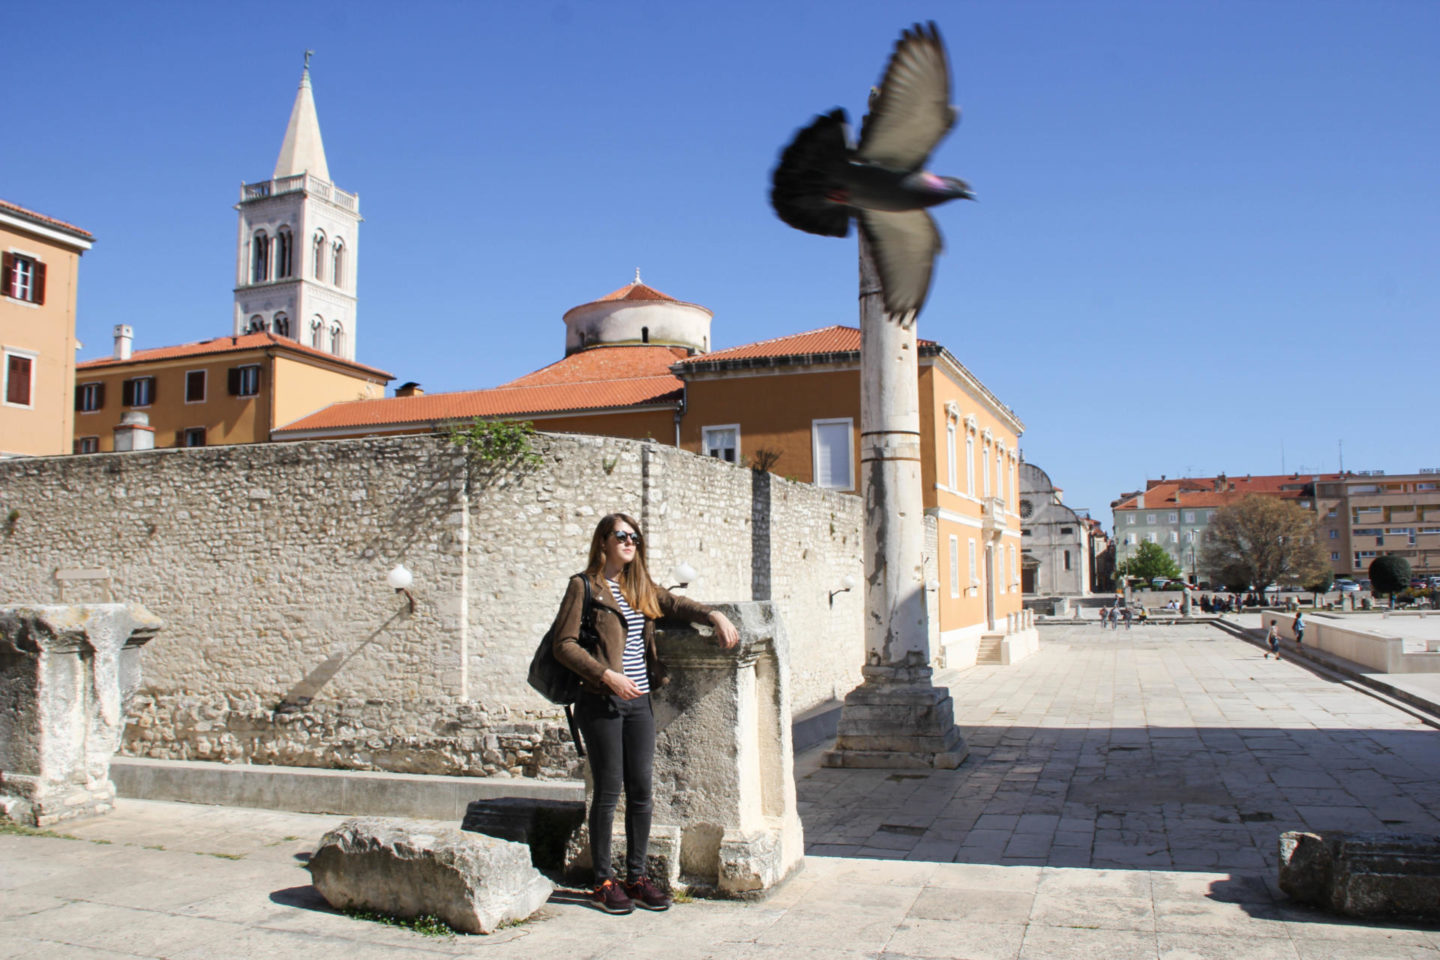 Old town zadar what to see